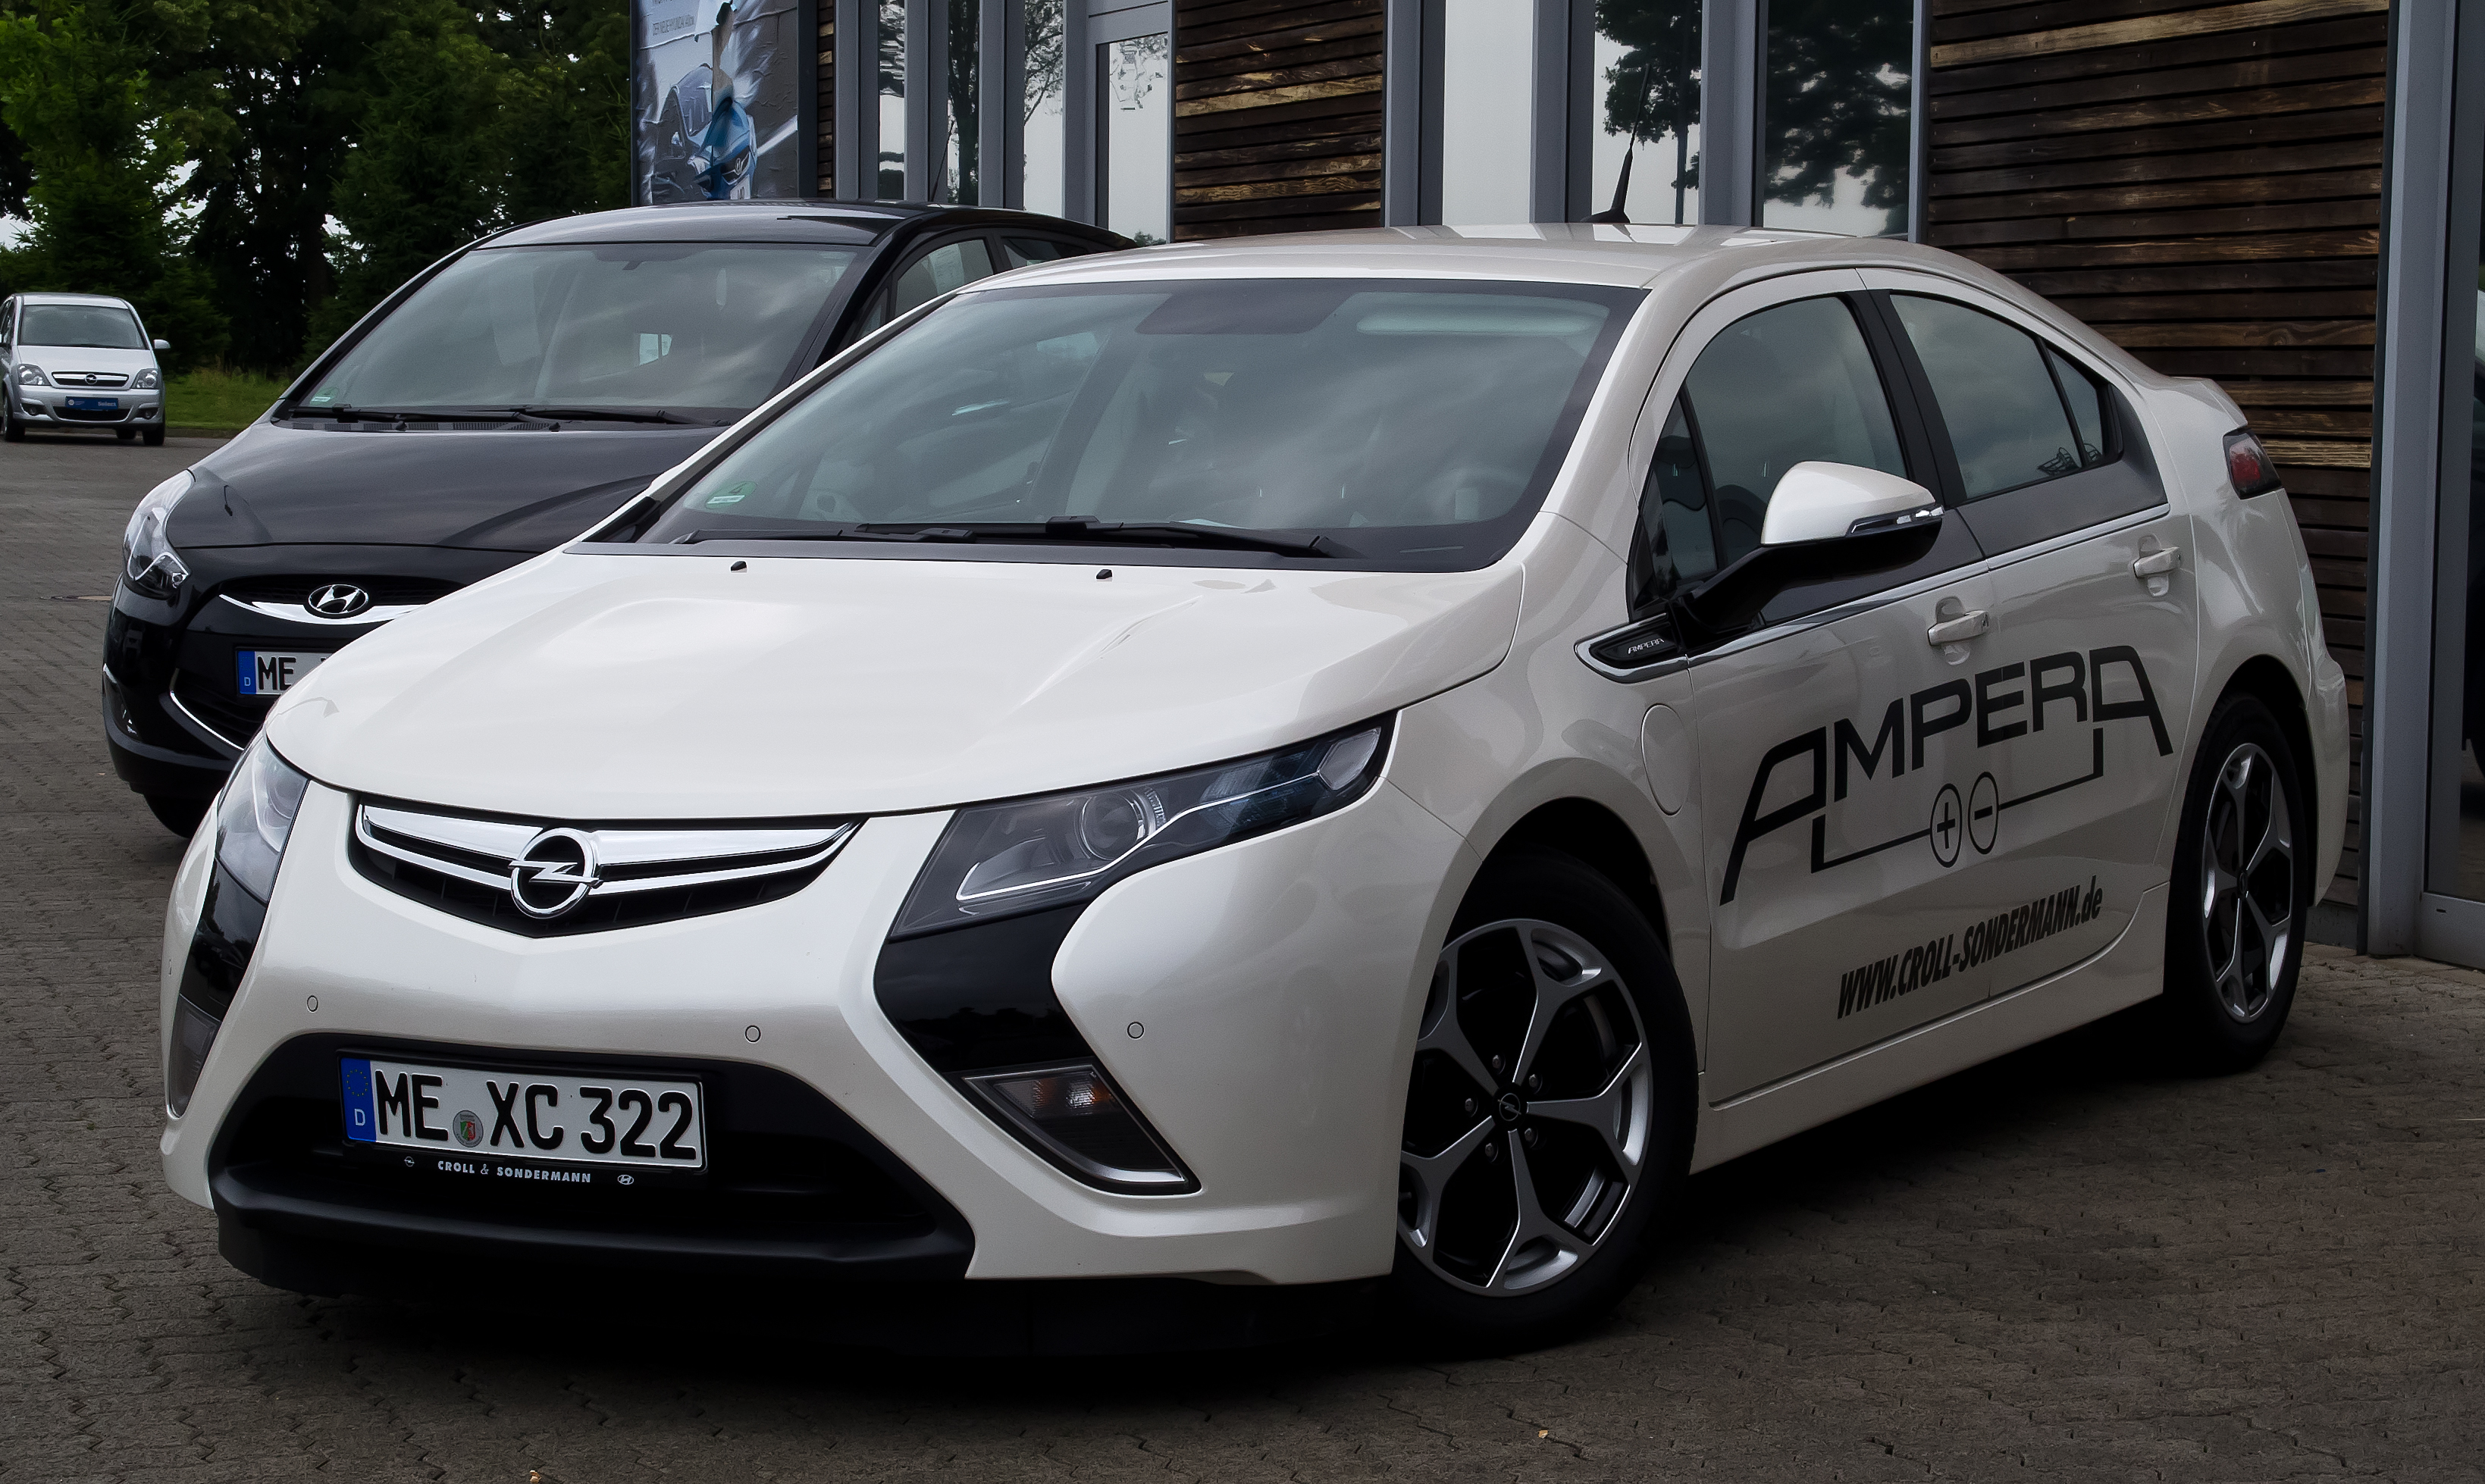 file opel ampera epionier edition frontansicht 9 juli 2012 wikimedia commons. Black Bedroom Furniture Sets. Home Design Ideas